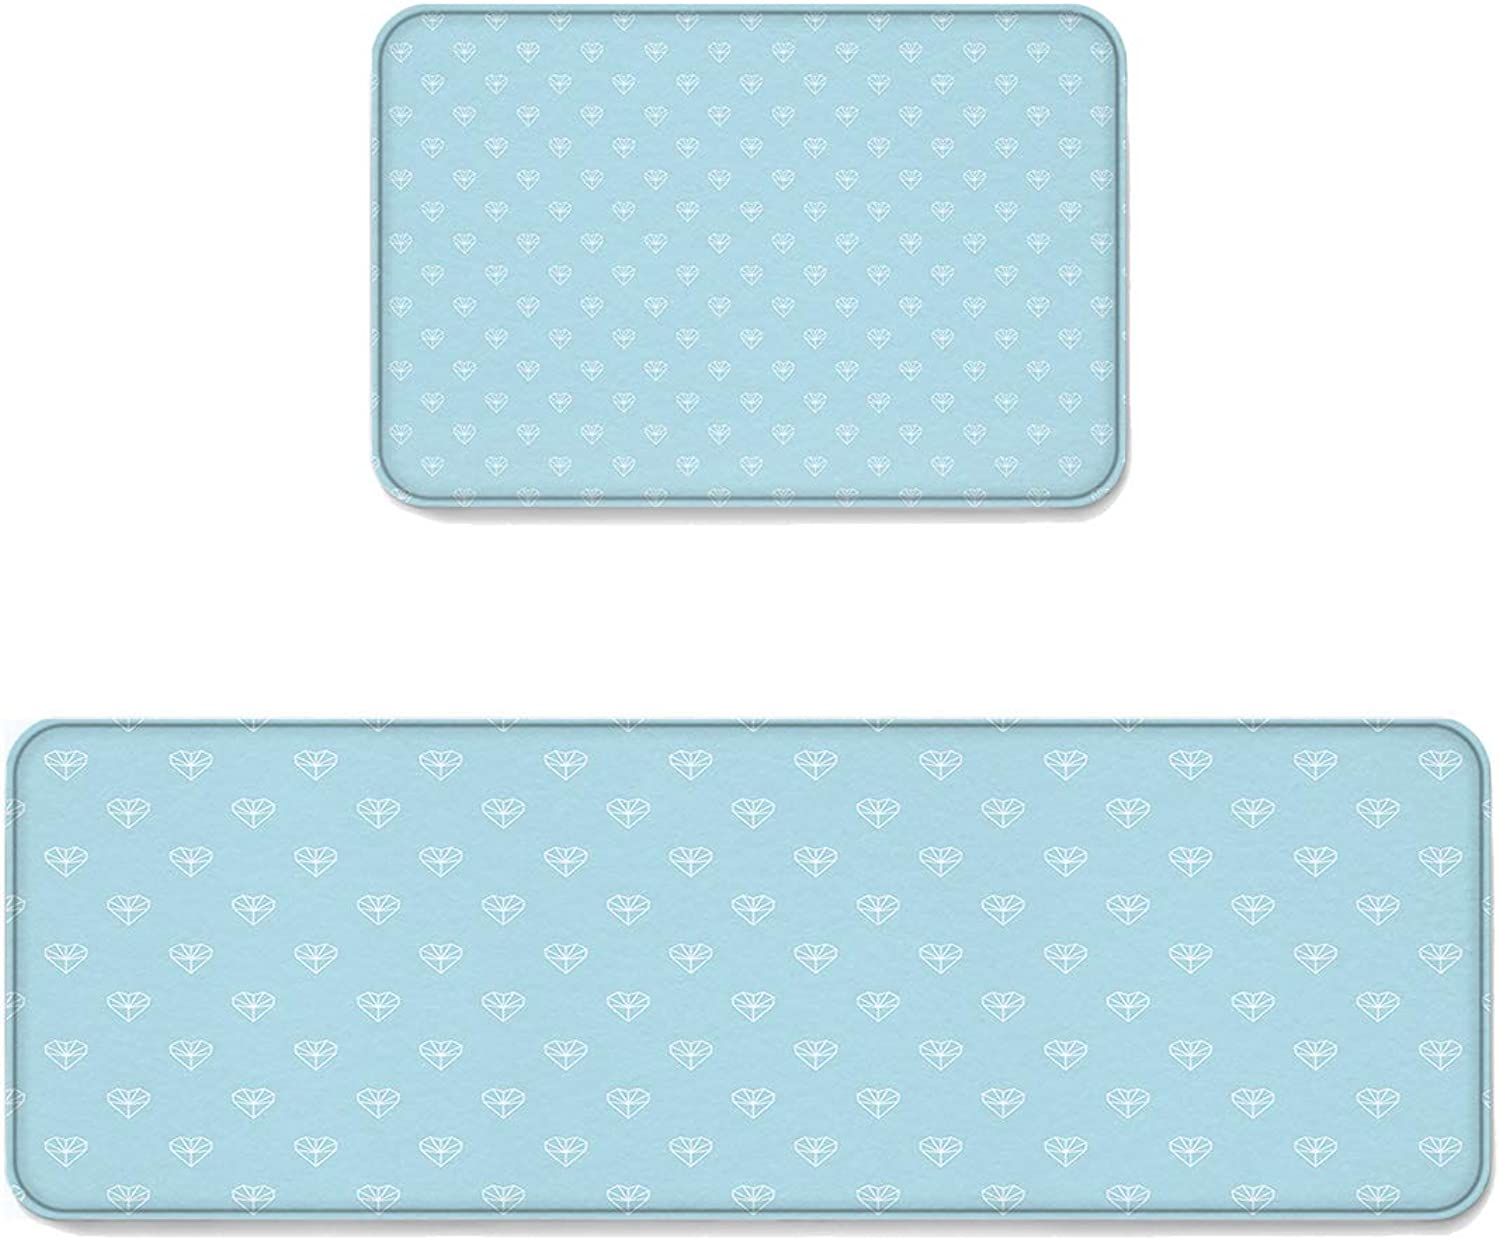 Kitchen Rug Sets 2 Piece Floor Mats Non-Slip Rubber Backing Area Rugs Romantic Diamond Hearts on The Teal Background Doormat Washable Carpet Inside Door Mat Pad Sets (23.6  x 35.4 +23.6  x 70.9 )